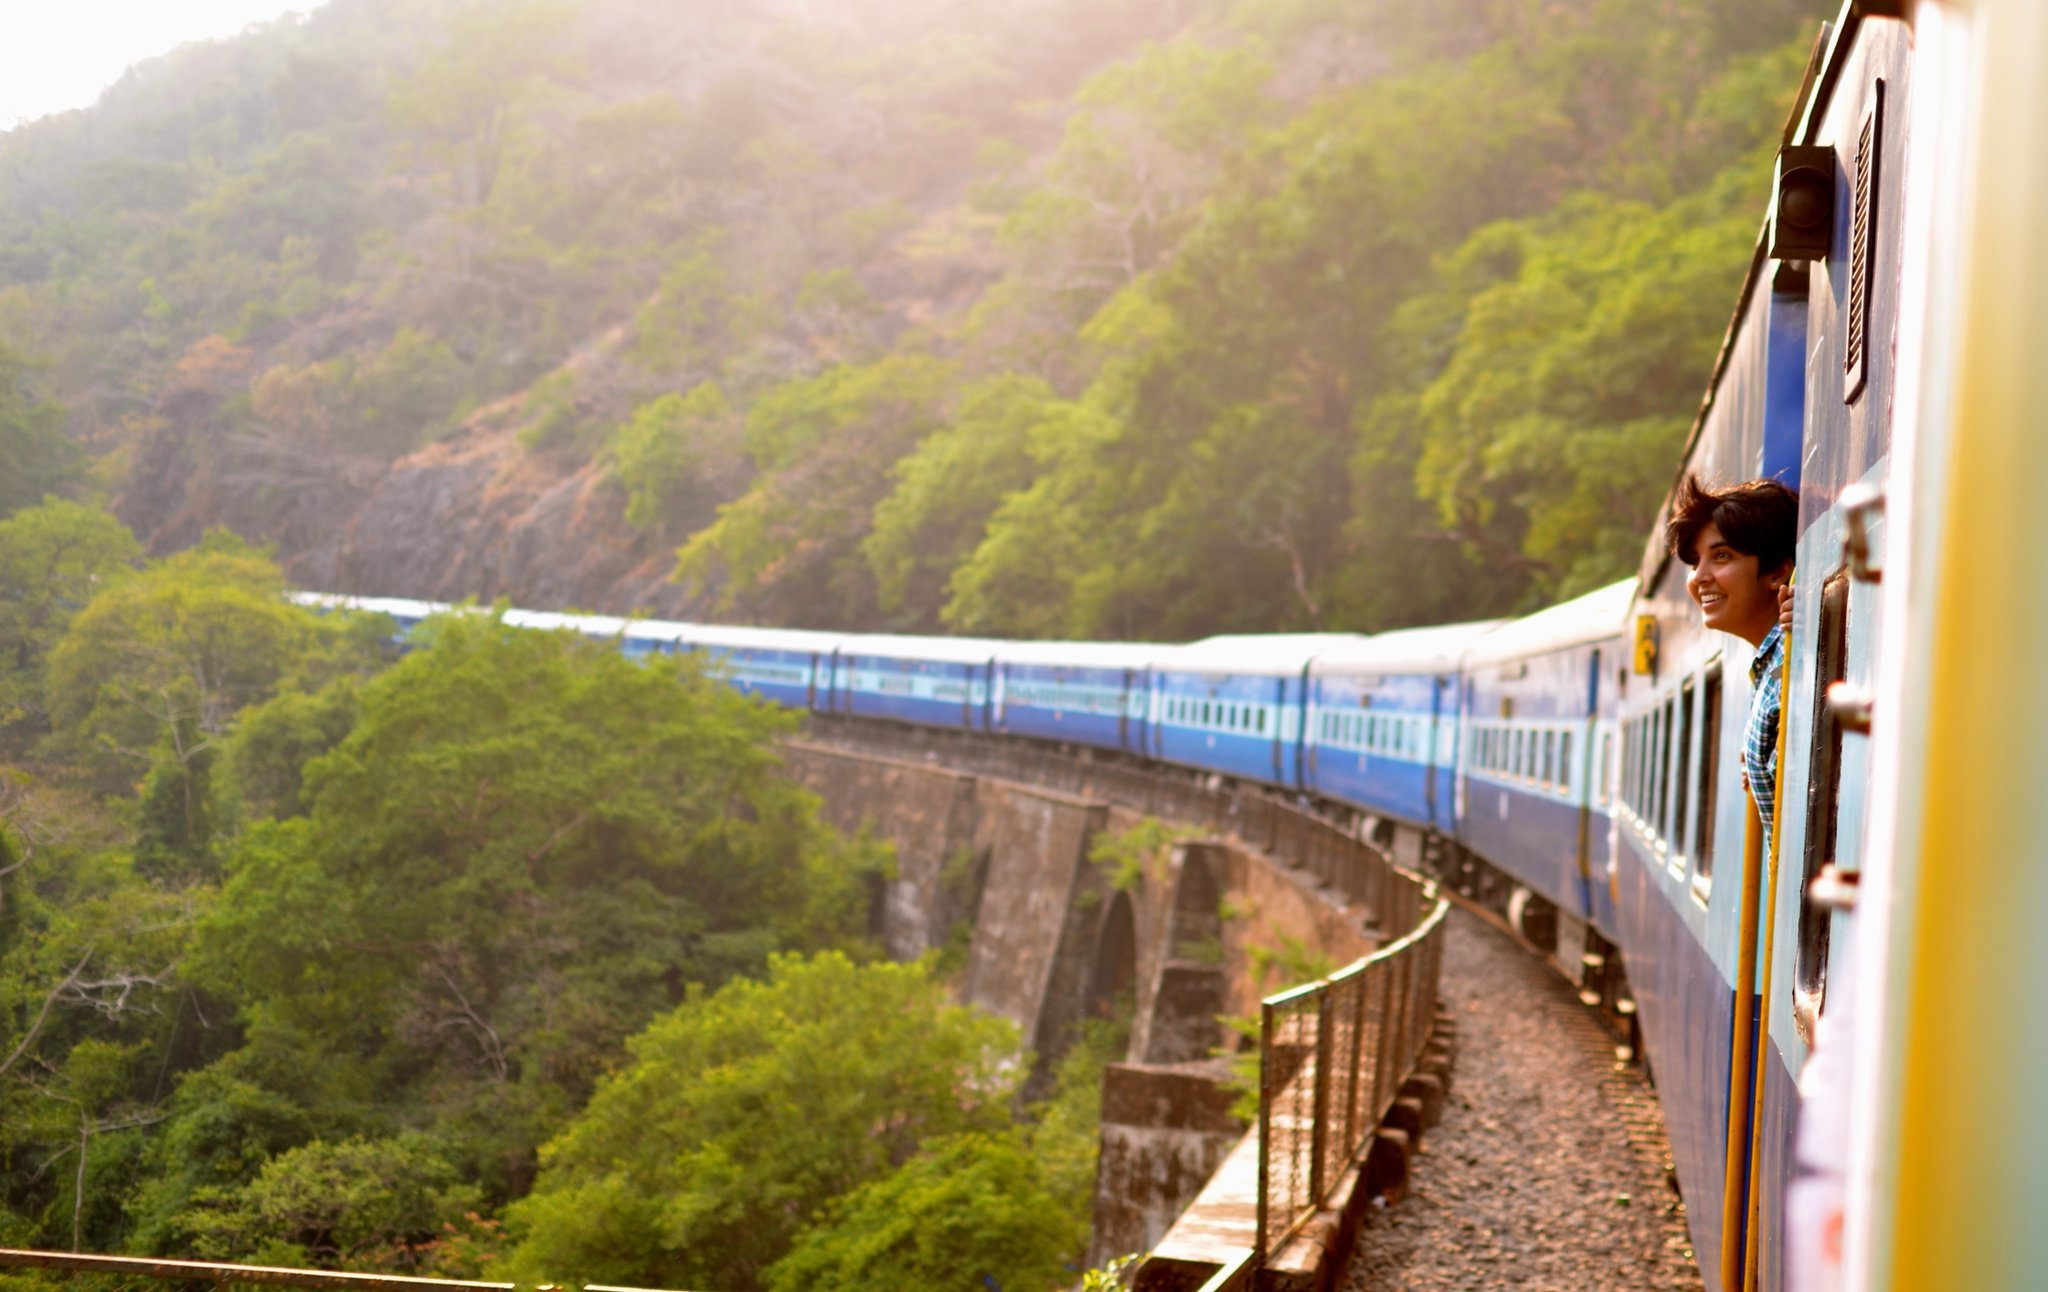 Security systems to be installed at 16 stations on Ethiopia